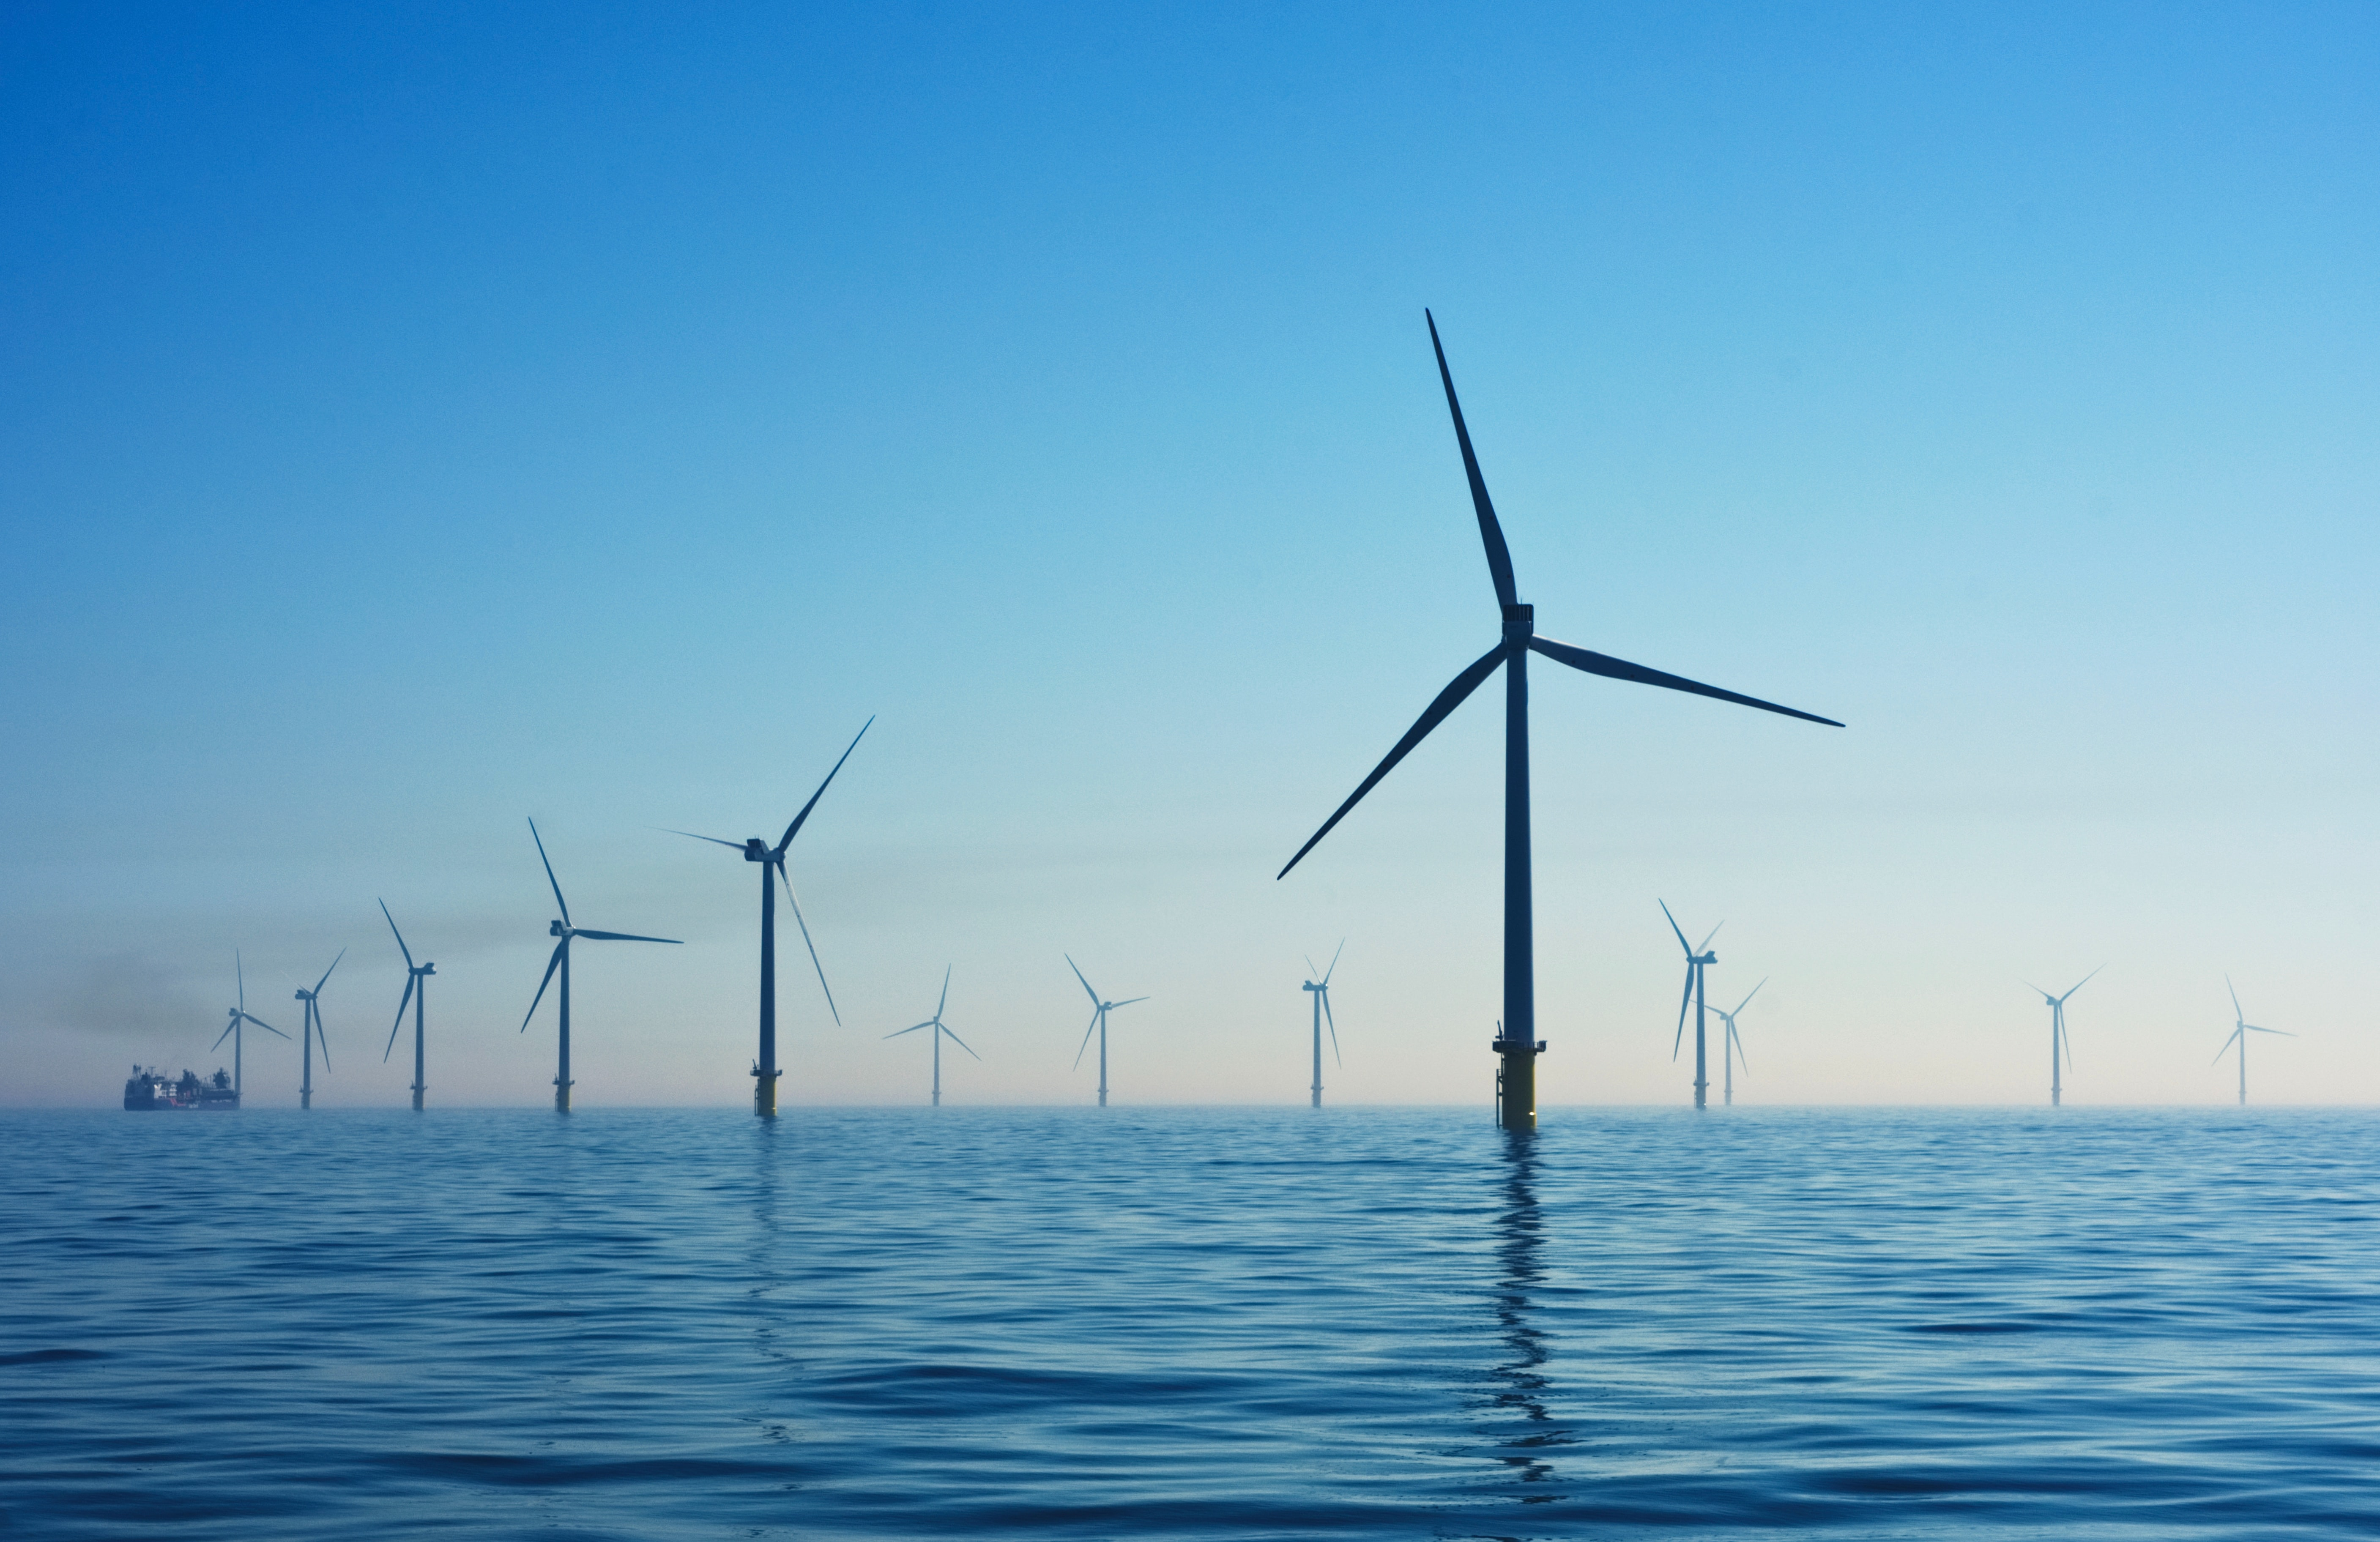 Australia has huge potential to develop offshore windfarms near existing substations